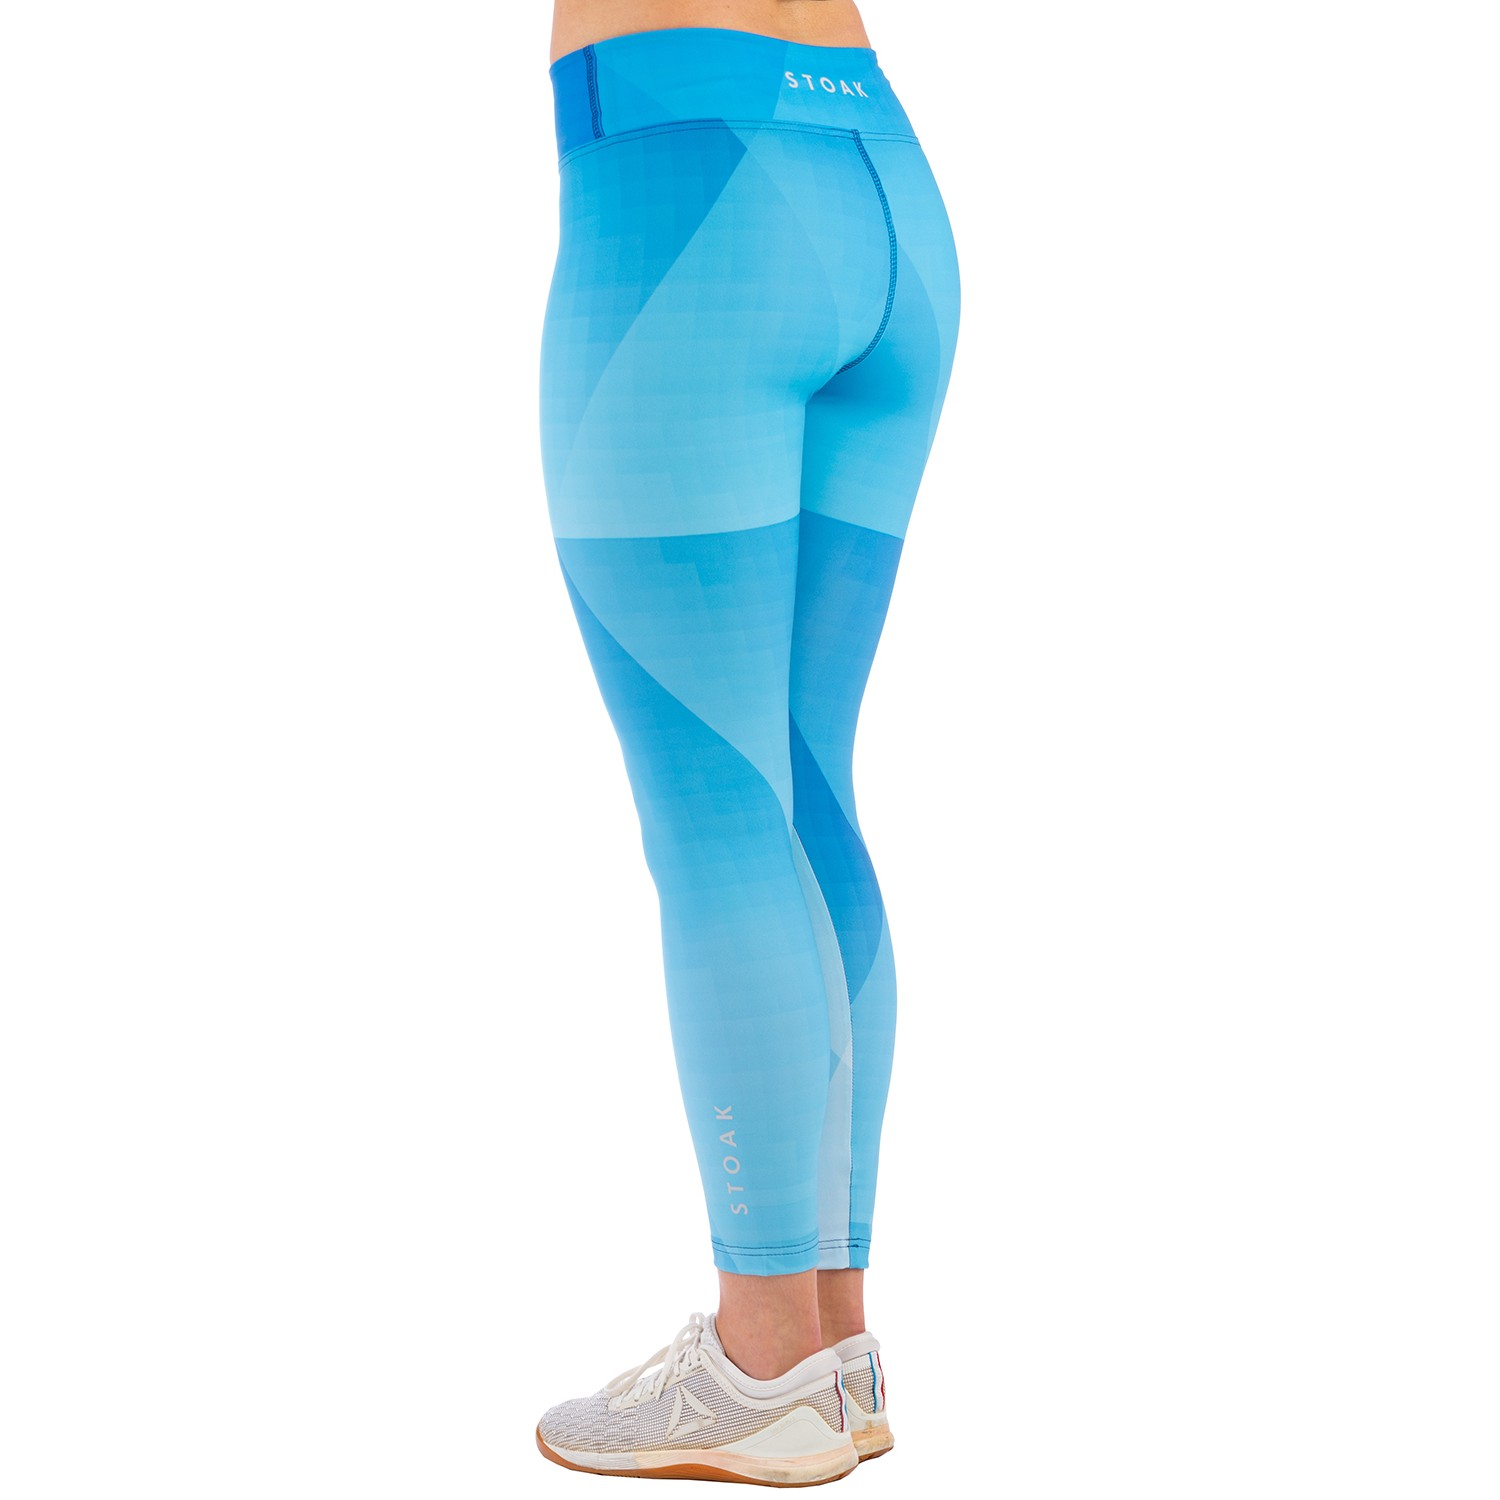 STOAK ICE Performance Leggings